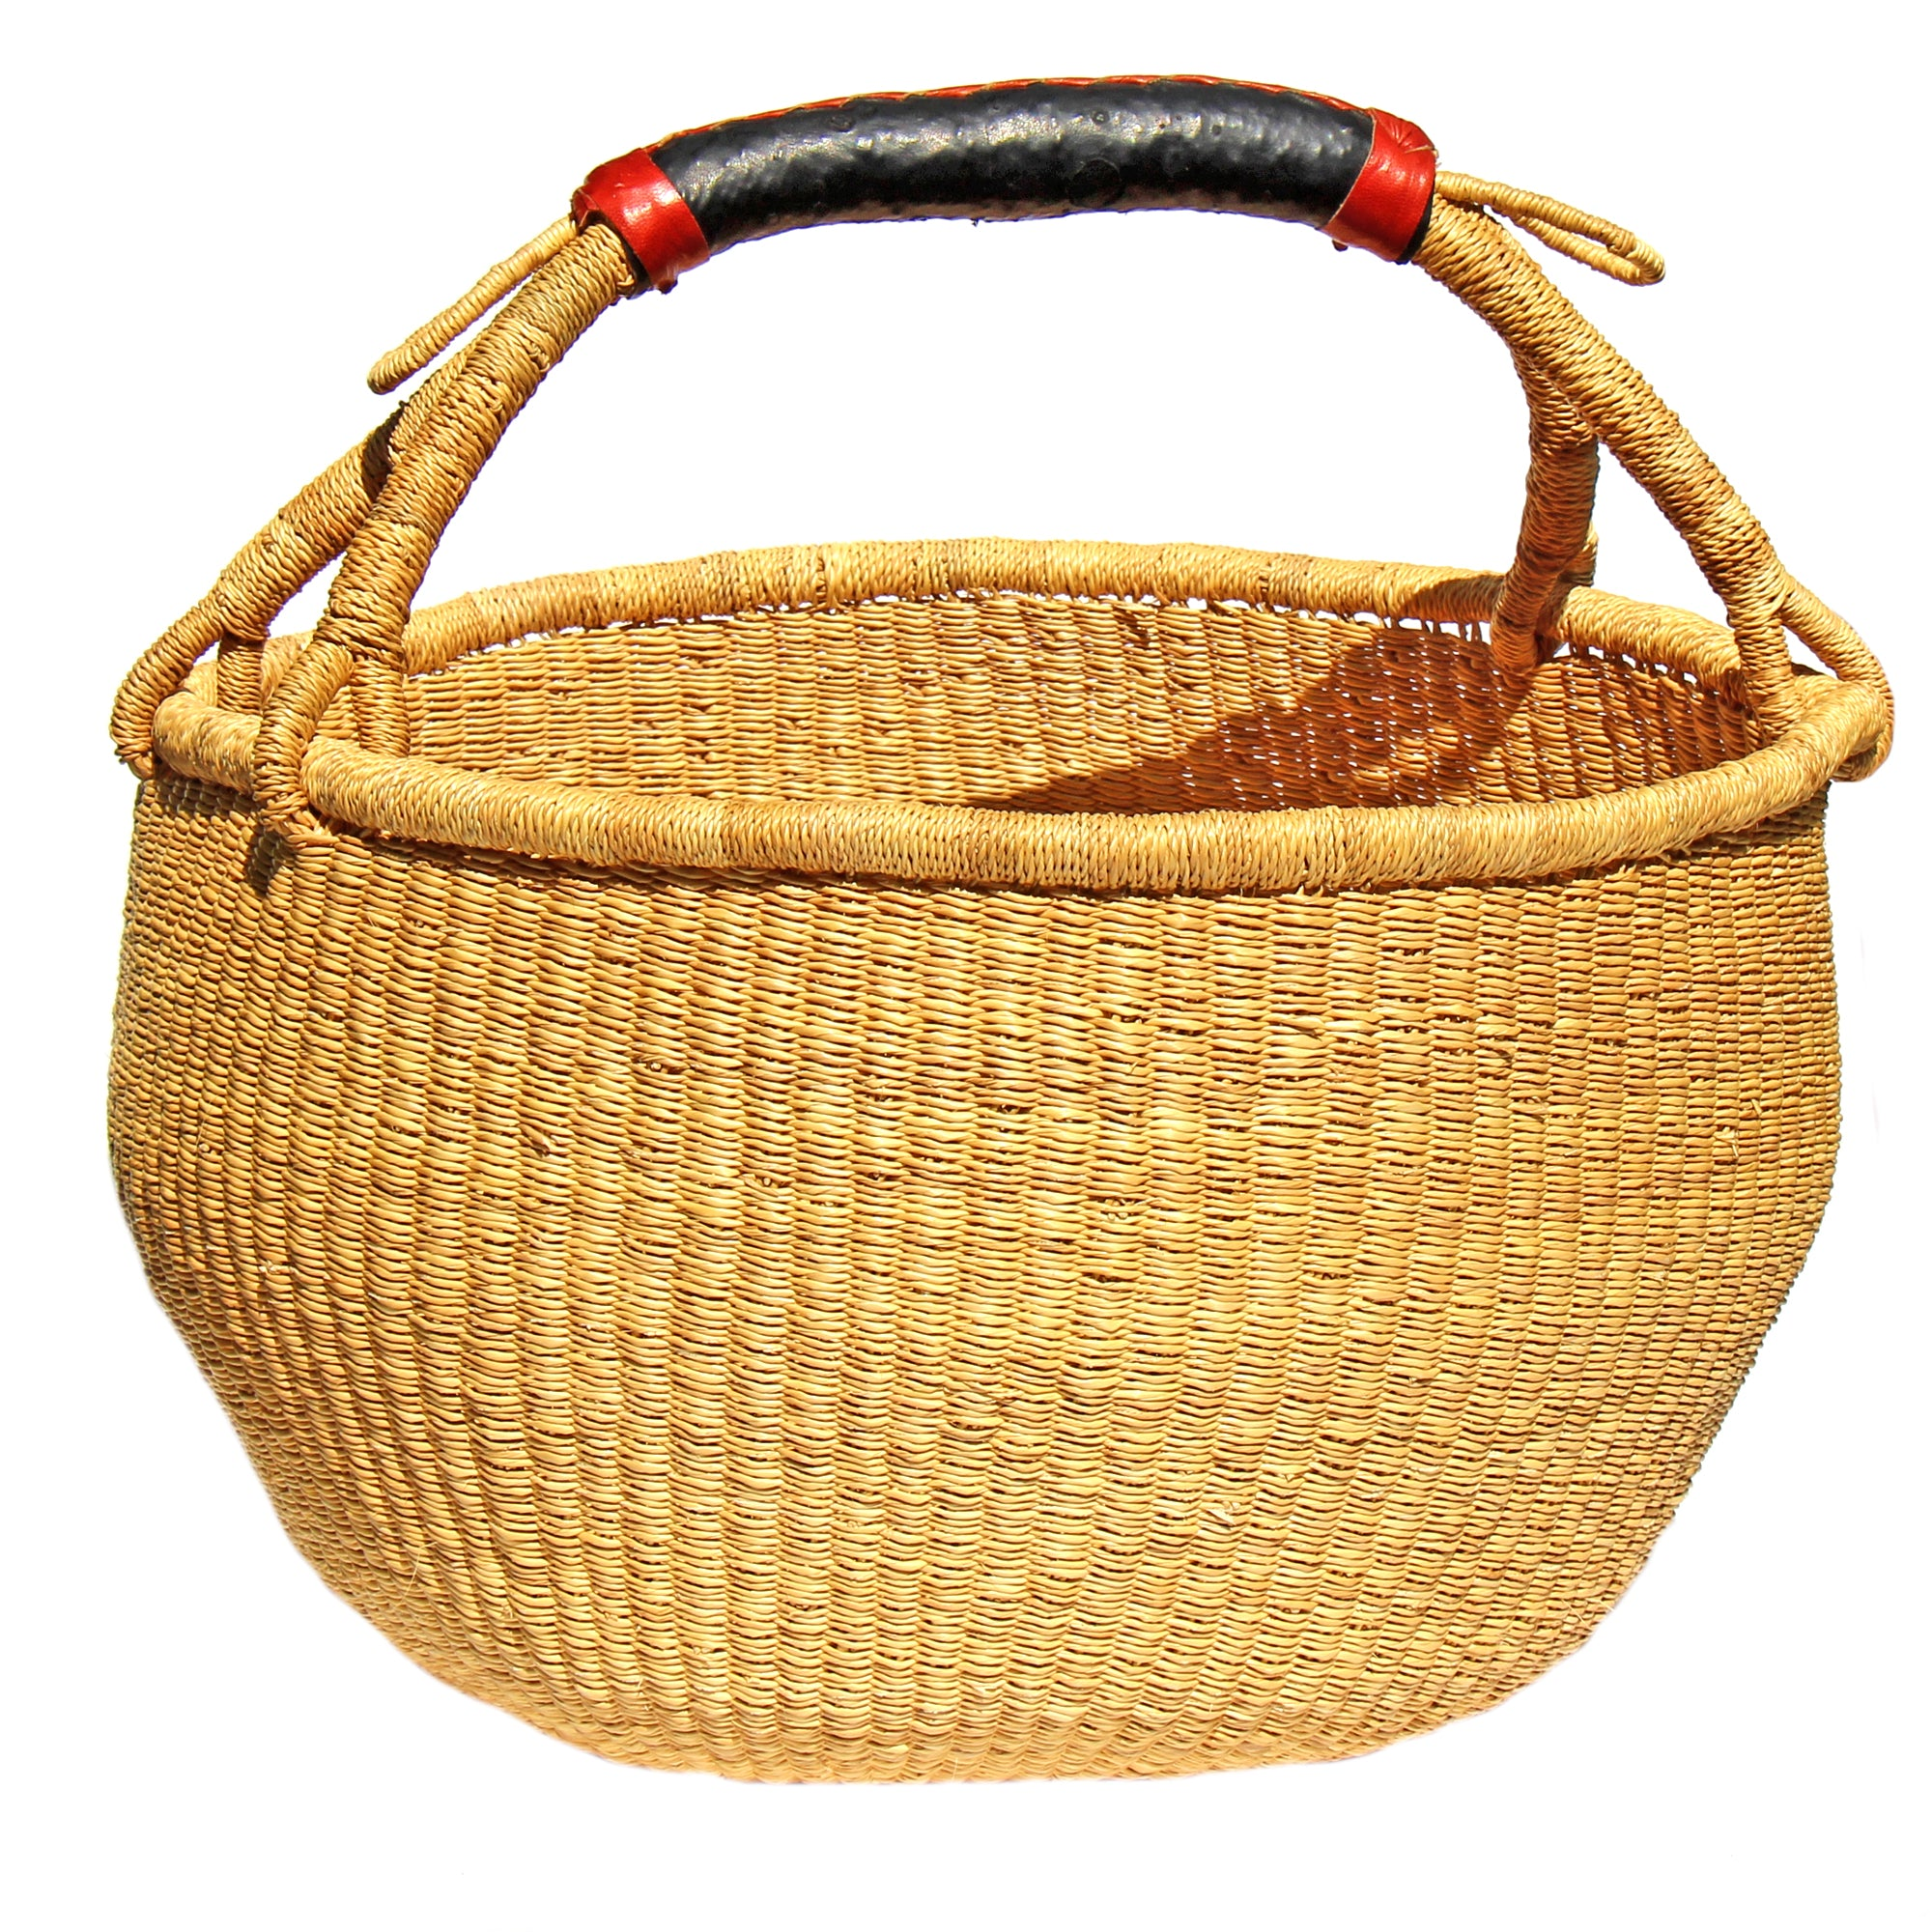 Bolga Market Basket, Extra Large Natural with Neutral Handles